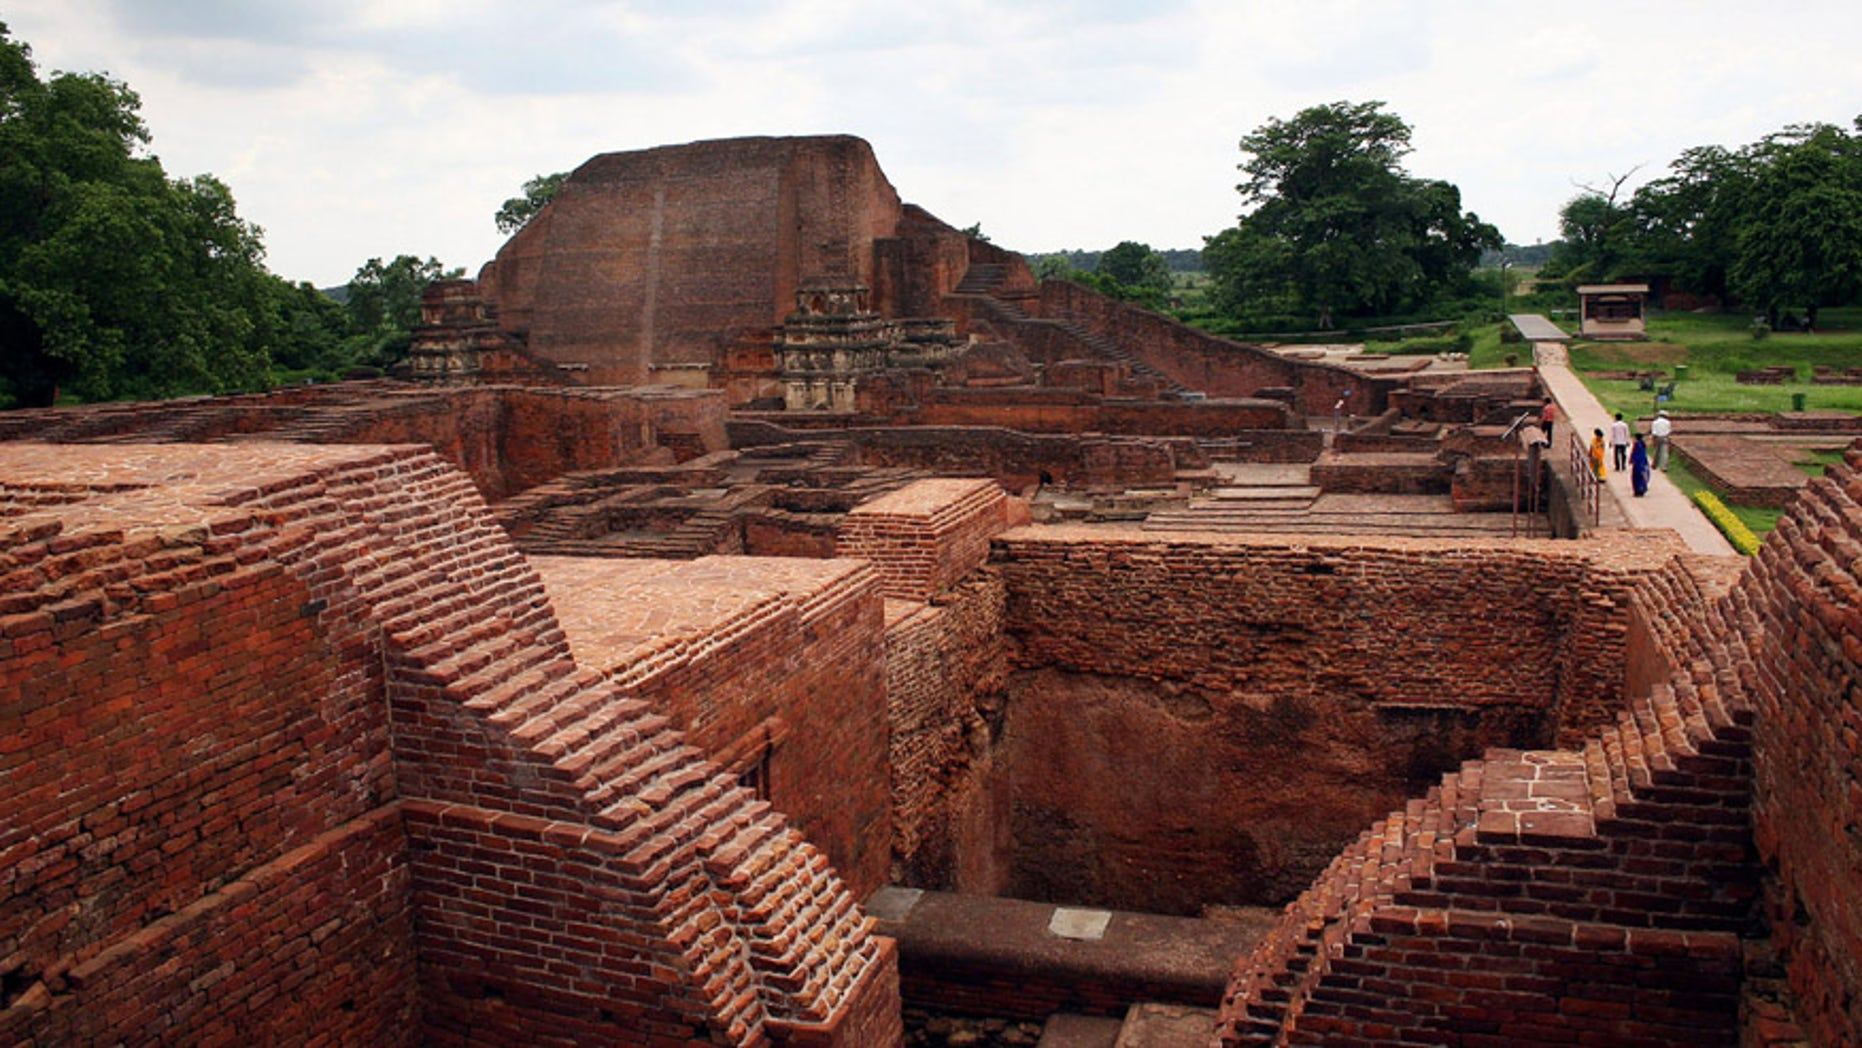 In this July 5, 2006 file photo, tourists walk at the ruins of the Nalanda University at Nalanda, India. UNESCO has put four new sites on its World Heritage List, including the archaeological site of Nalanda Mahavihara, or Nalanda University, on Friday, July 15, 2016.